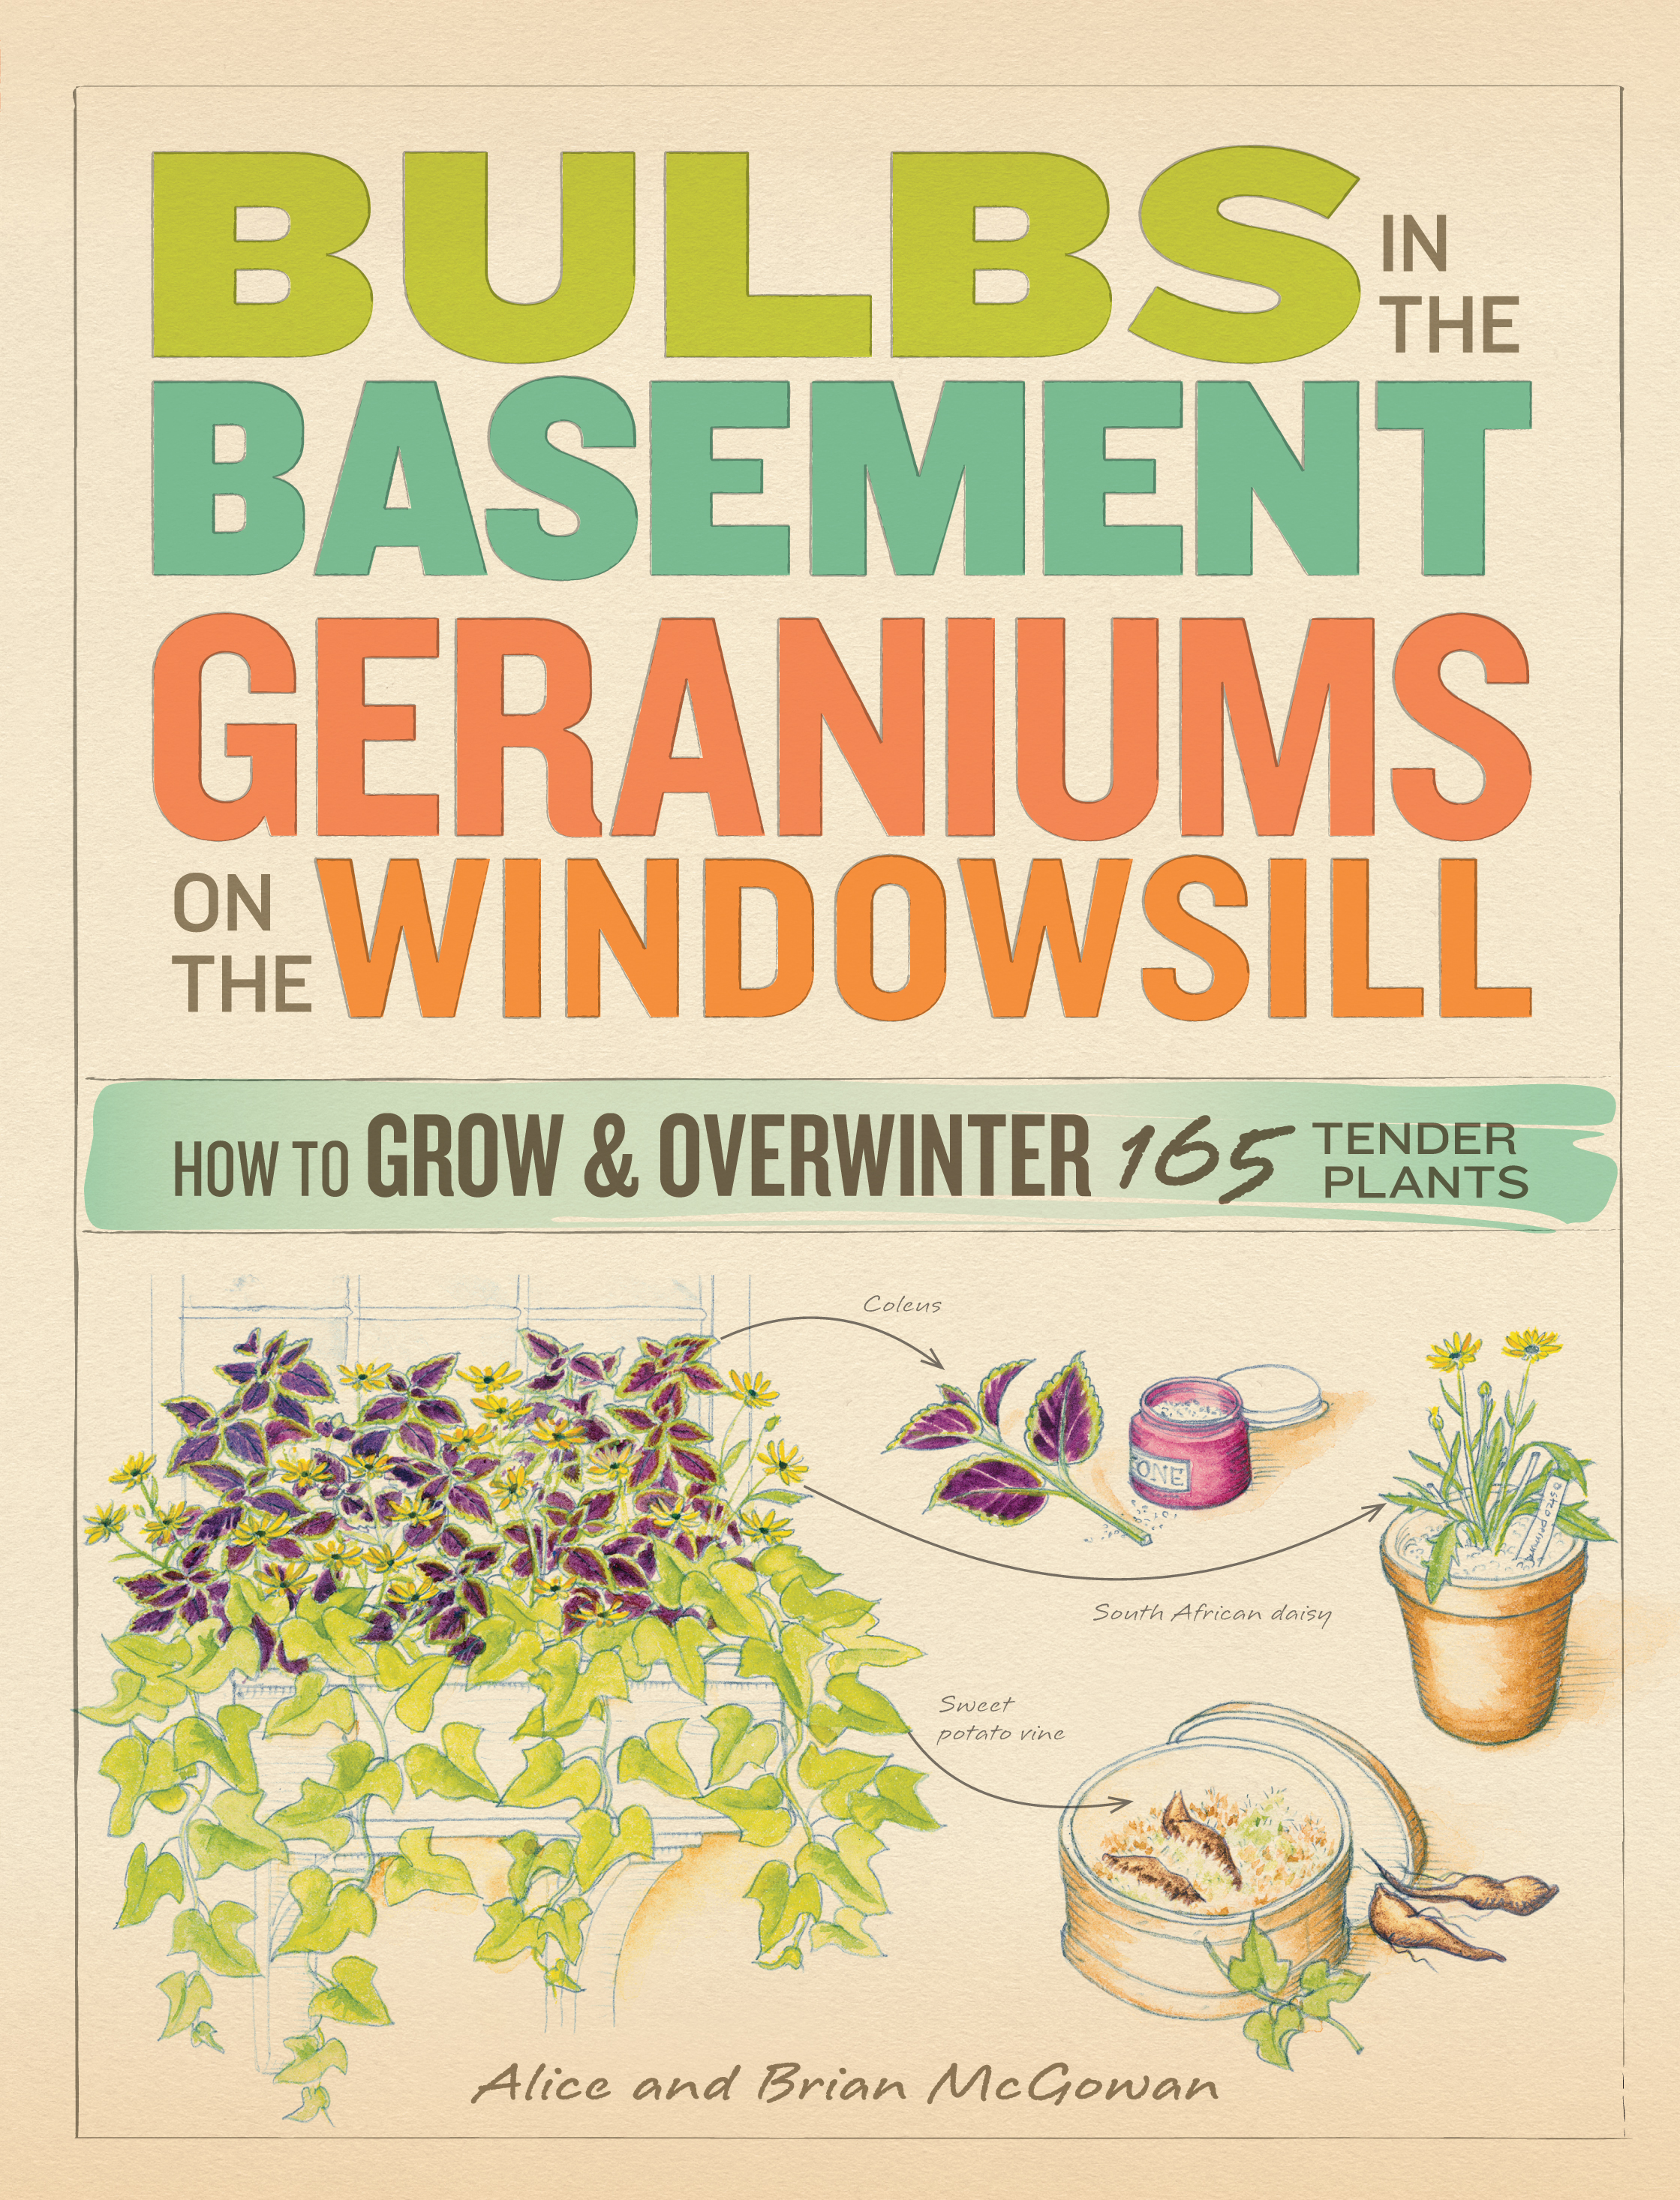 Bulbs in the Basement, Geraniums on the Windowsill  How to Grow & Overwinter 165 Tender Plants - Alice McGowan